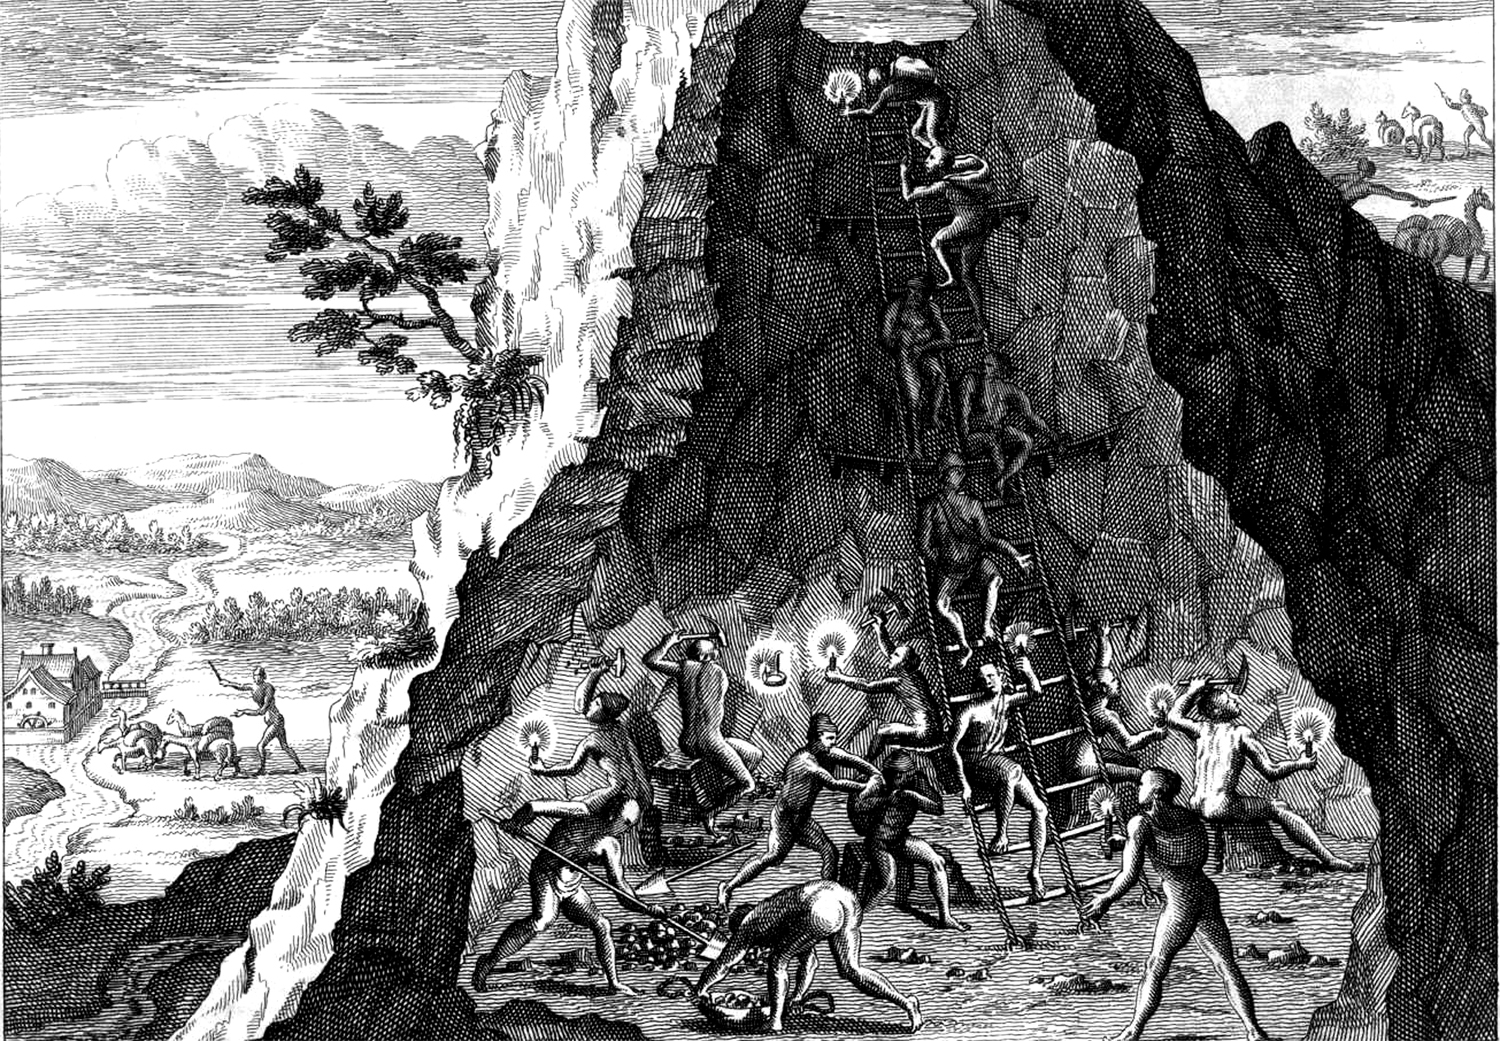 Theodore de Bry, miners in Potosí, engraving (1590) (Tom Christensen, from 1616: The World in Motion, Counterpoint Press, 2012)